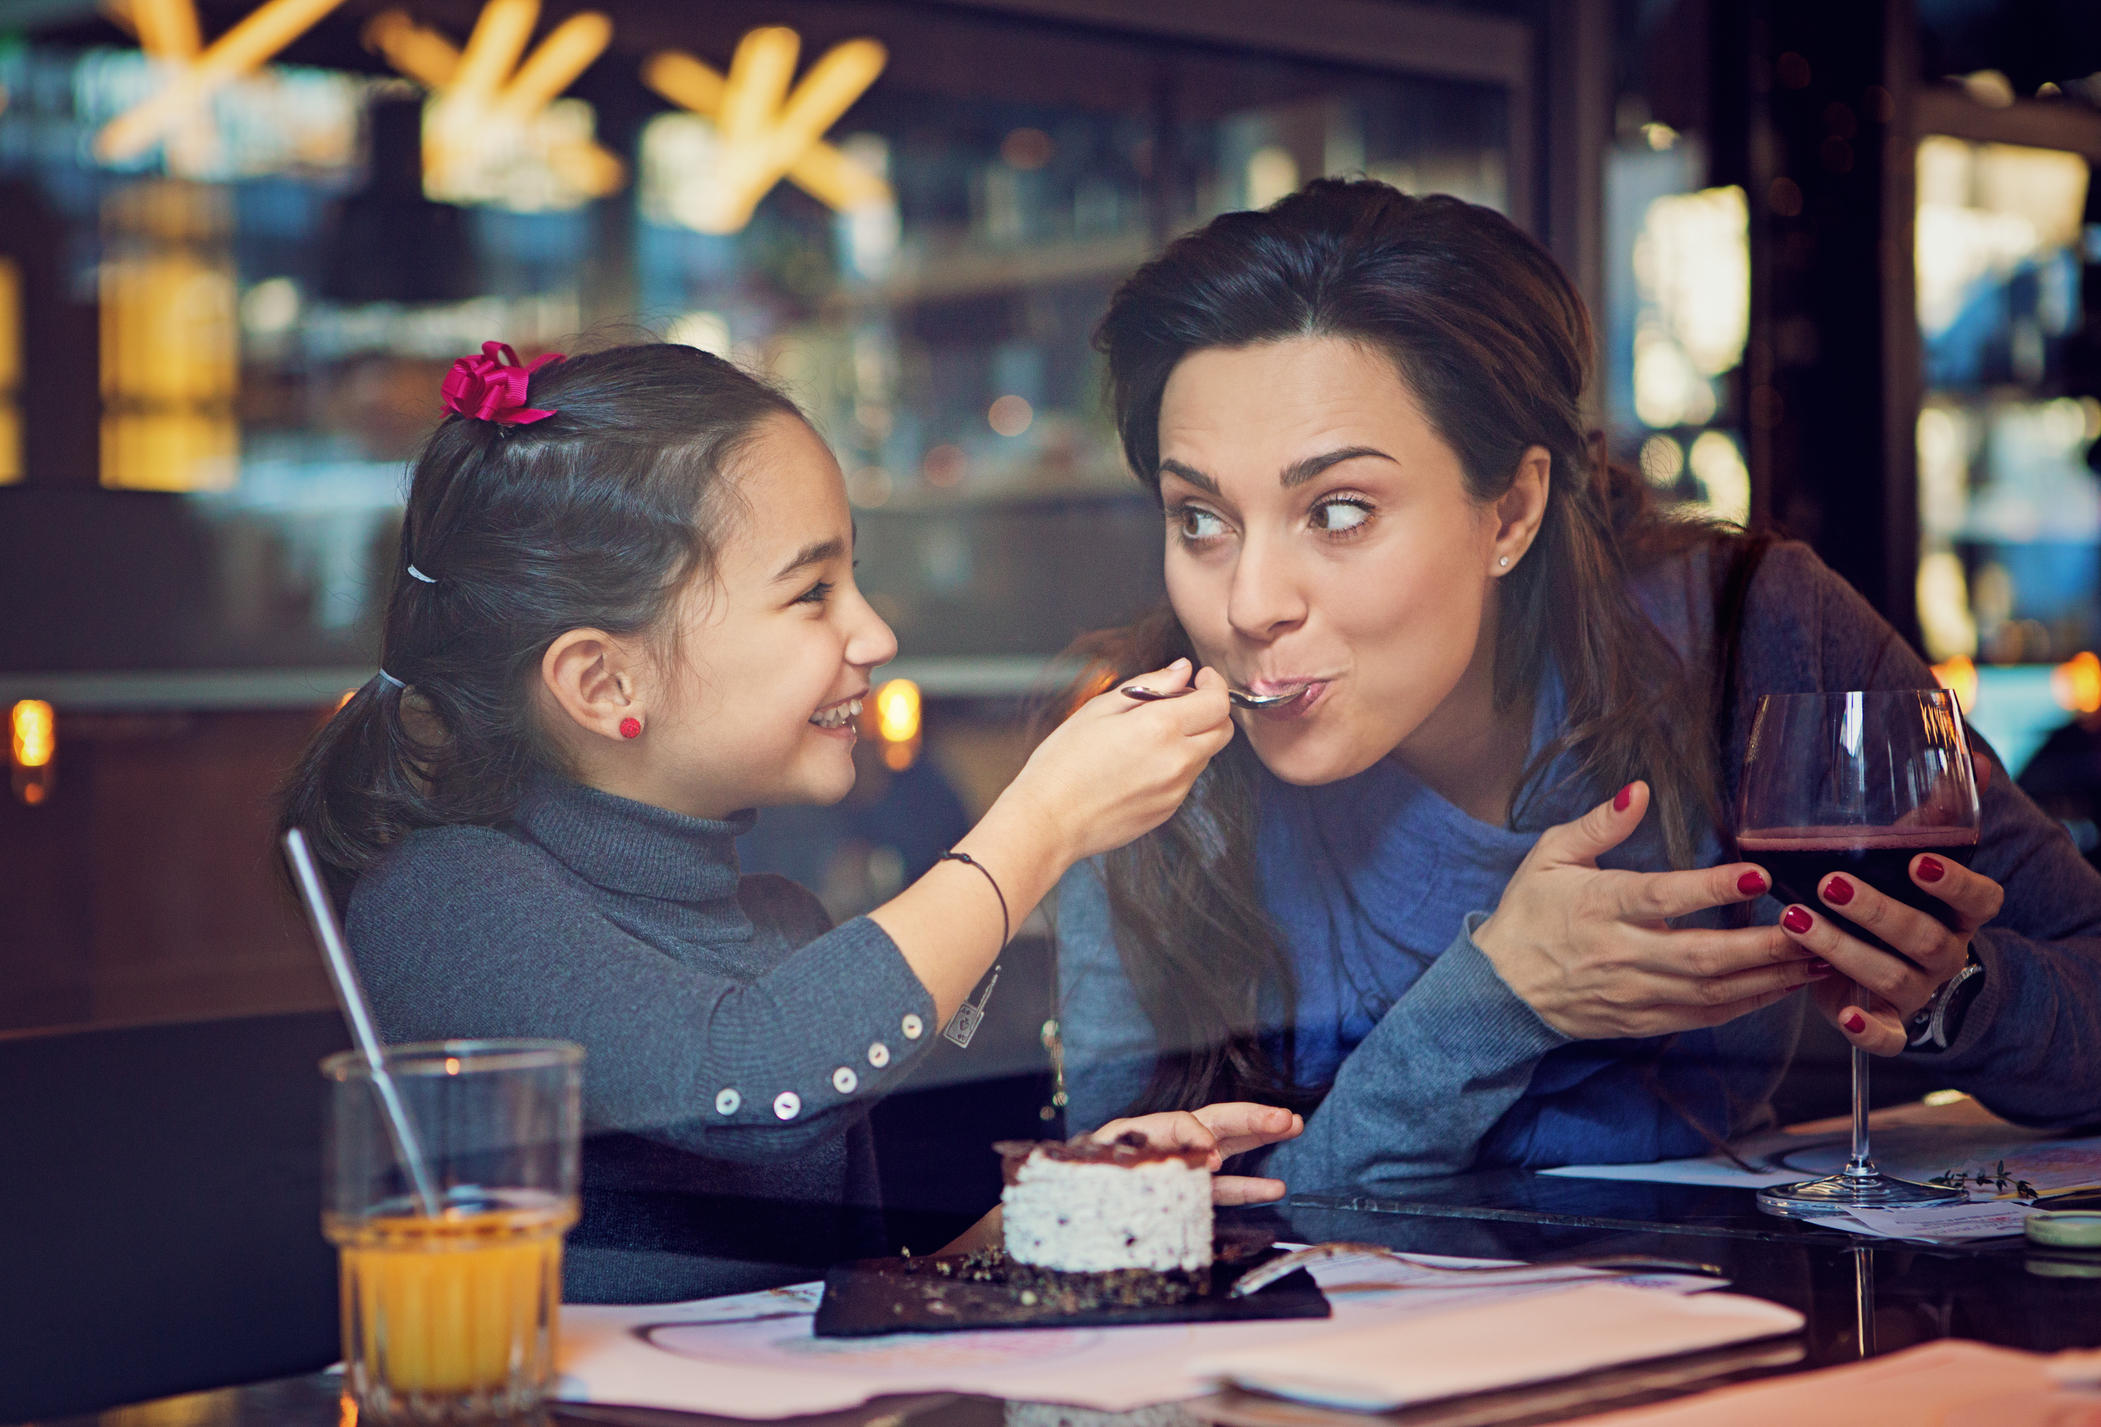 Mother and daughter out to eat